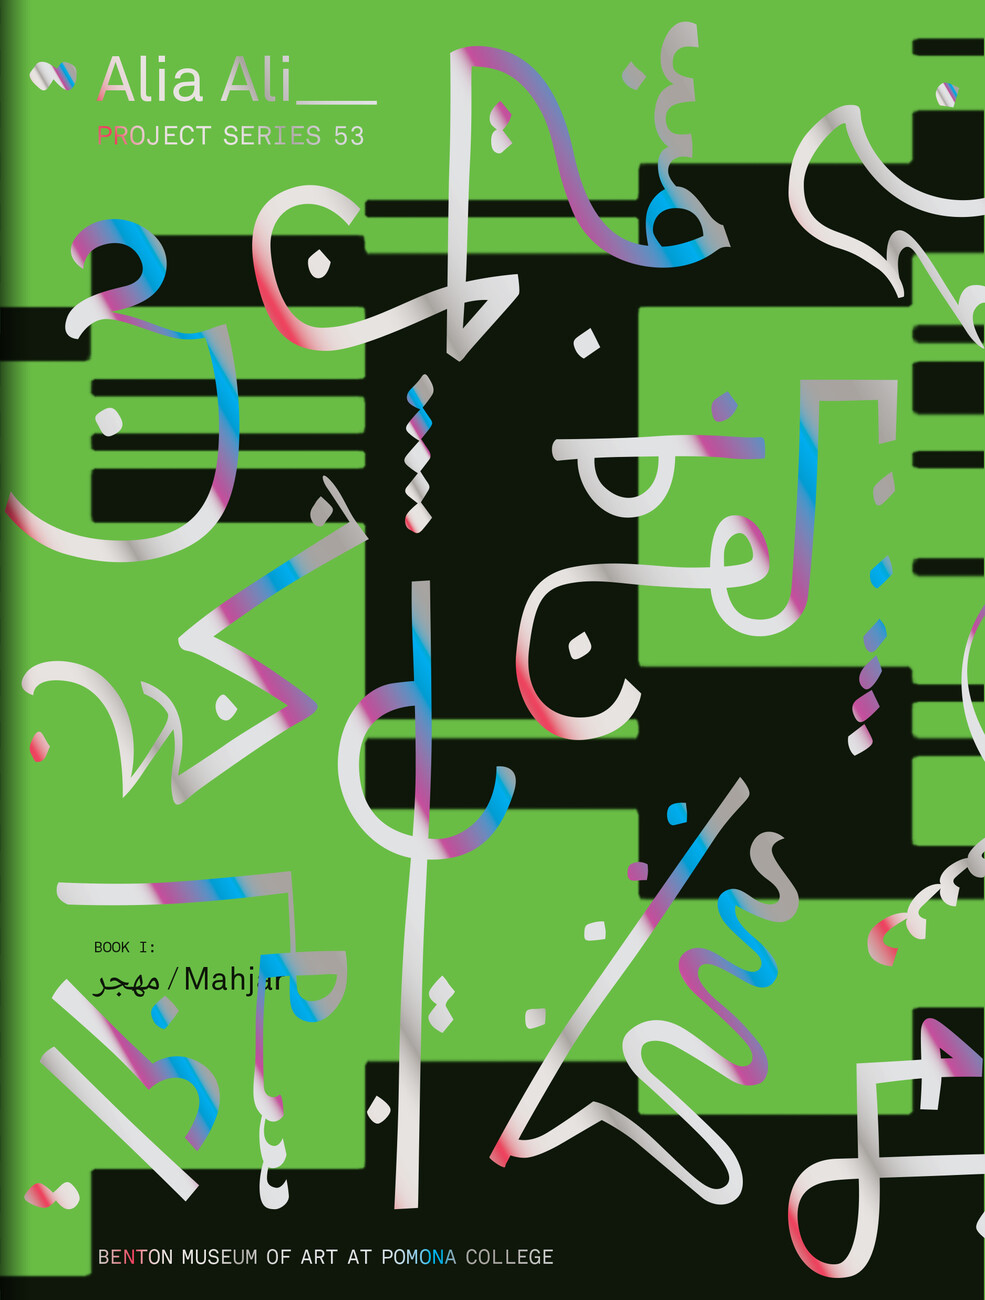 Catalogue cover for Alia Ali's exhibition with glossed Arabic writing on green and black design